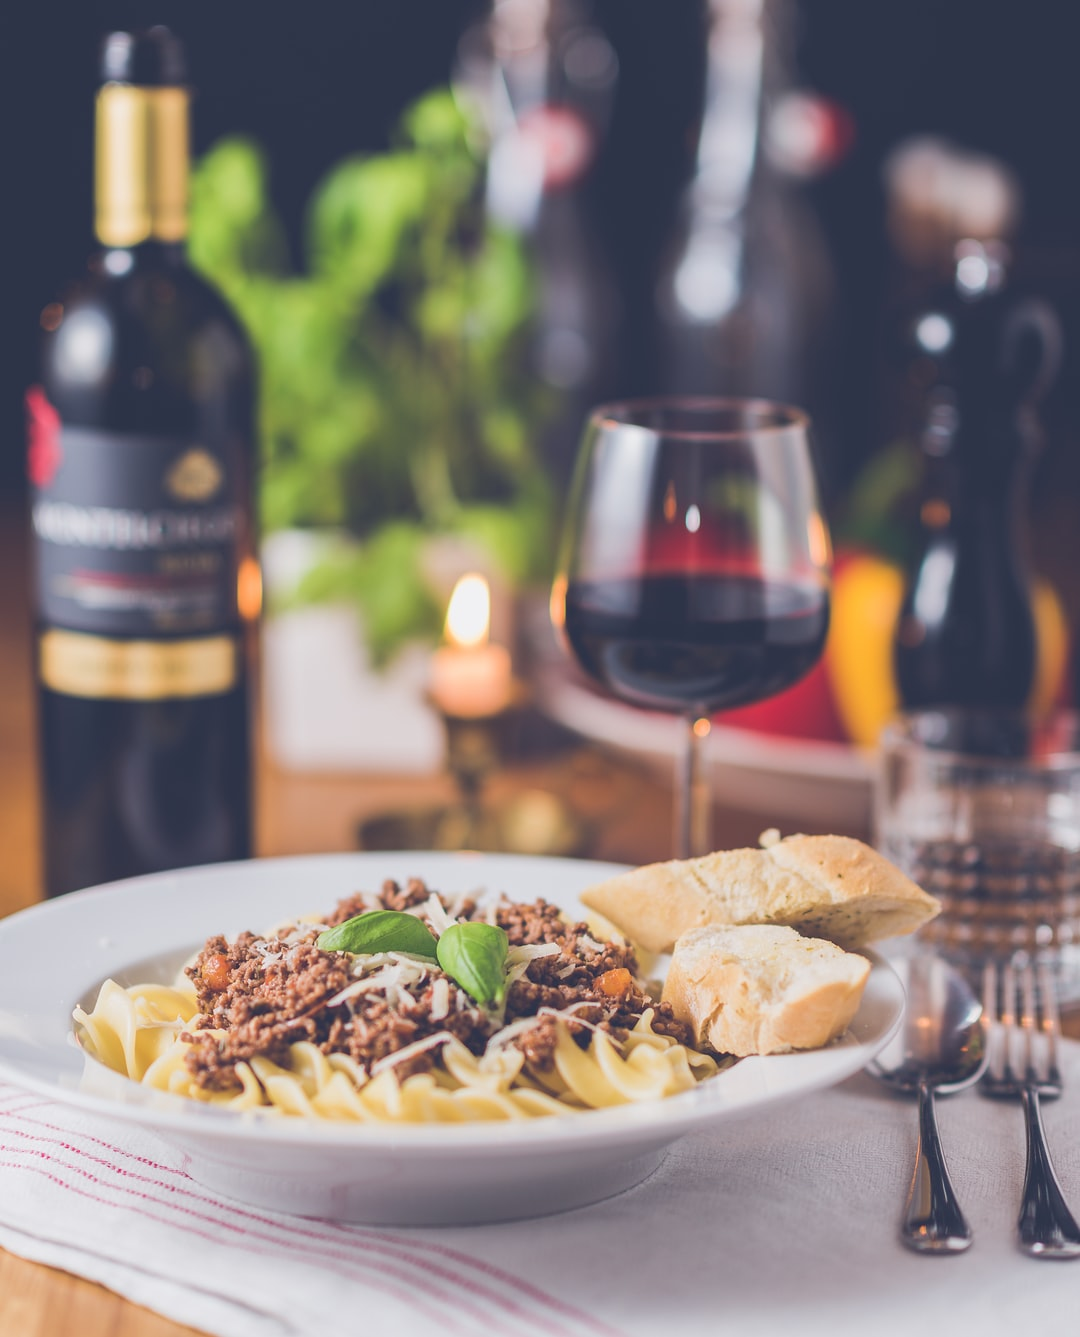 A plate with a pasta dish next to a wine bottle and a glass of red wine on a set table